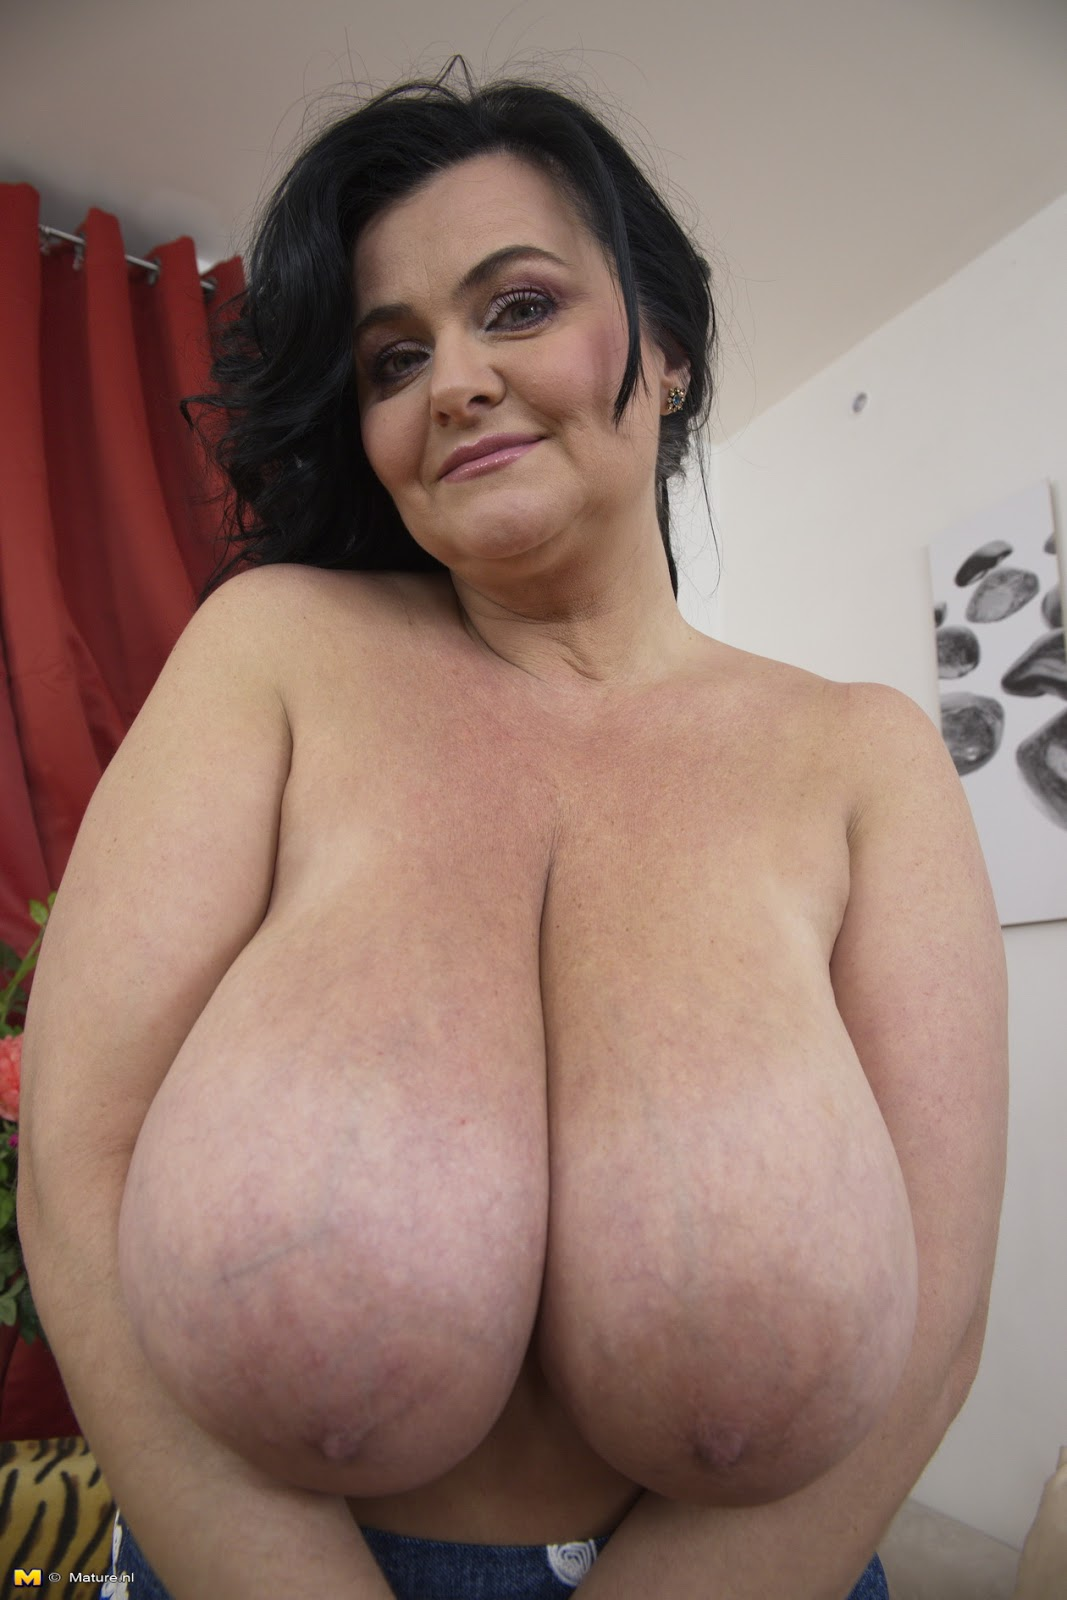 Big Breasted Nude Women